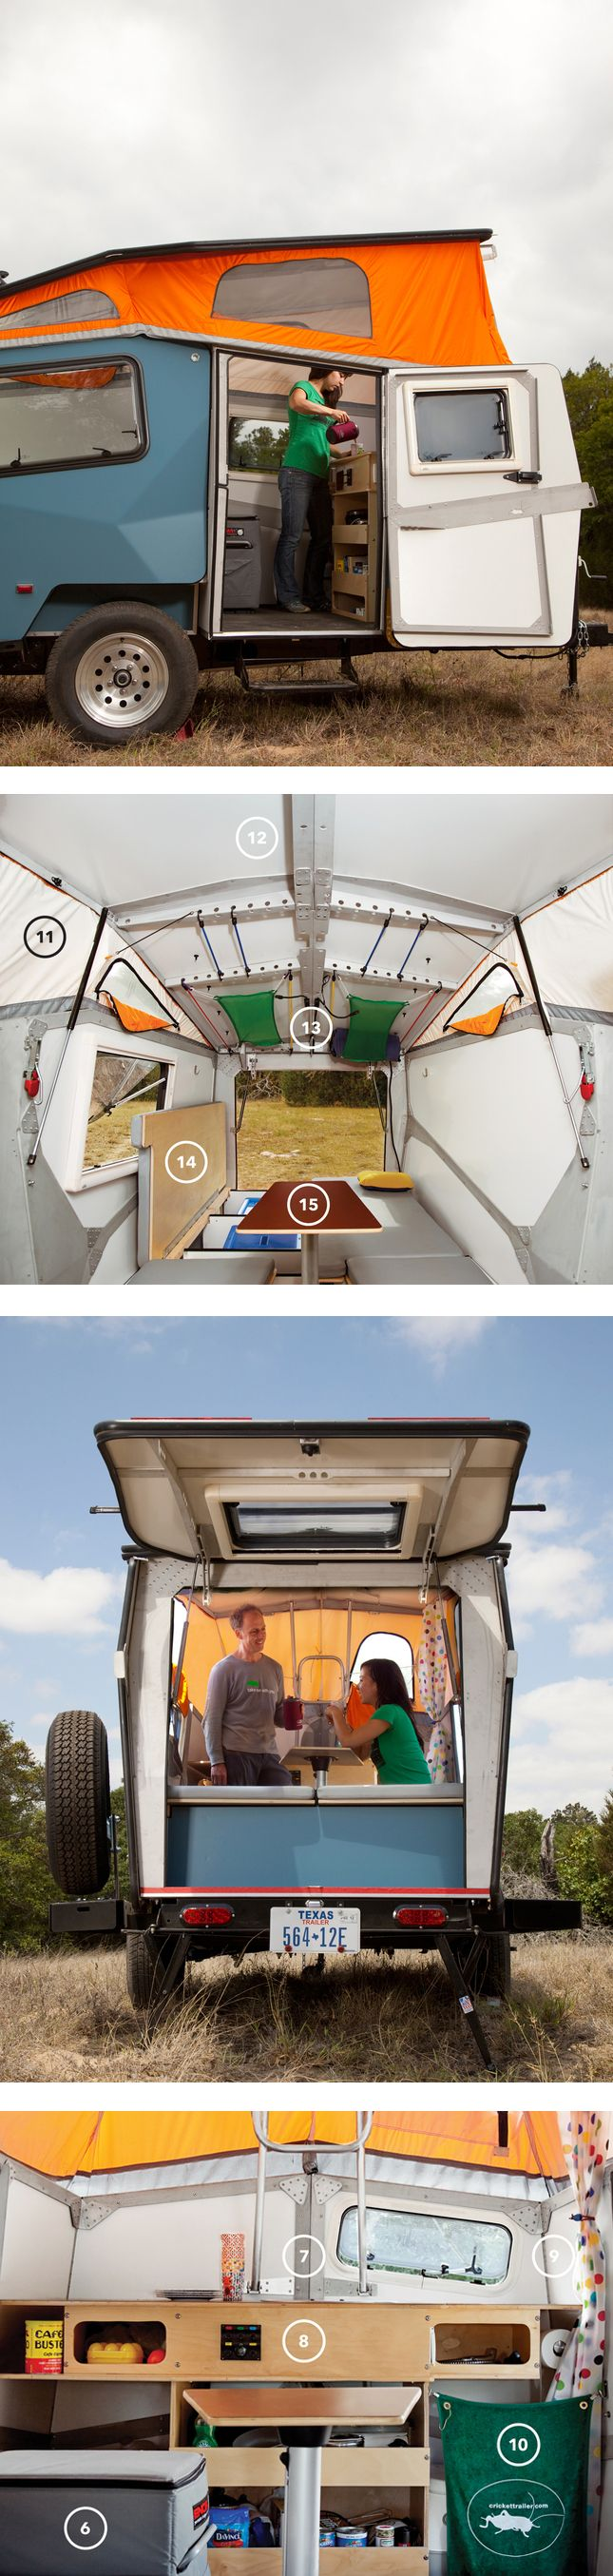 part tent, part rv, the cricket trailer is the go-to for the modern road tripper. via dwell. #travel